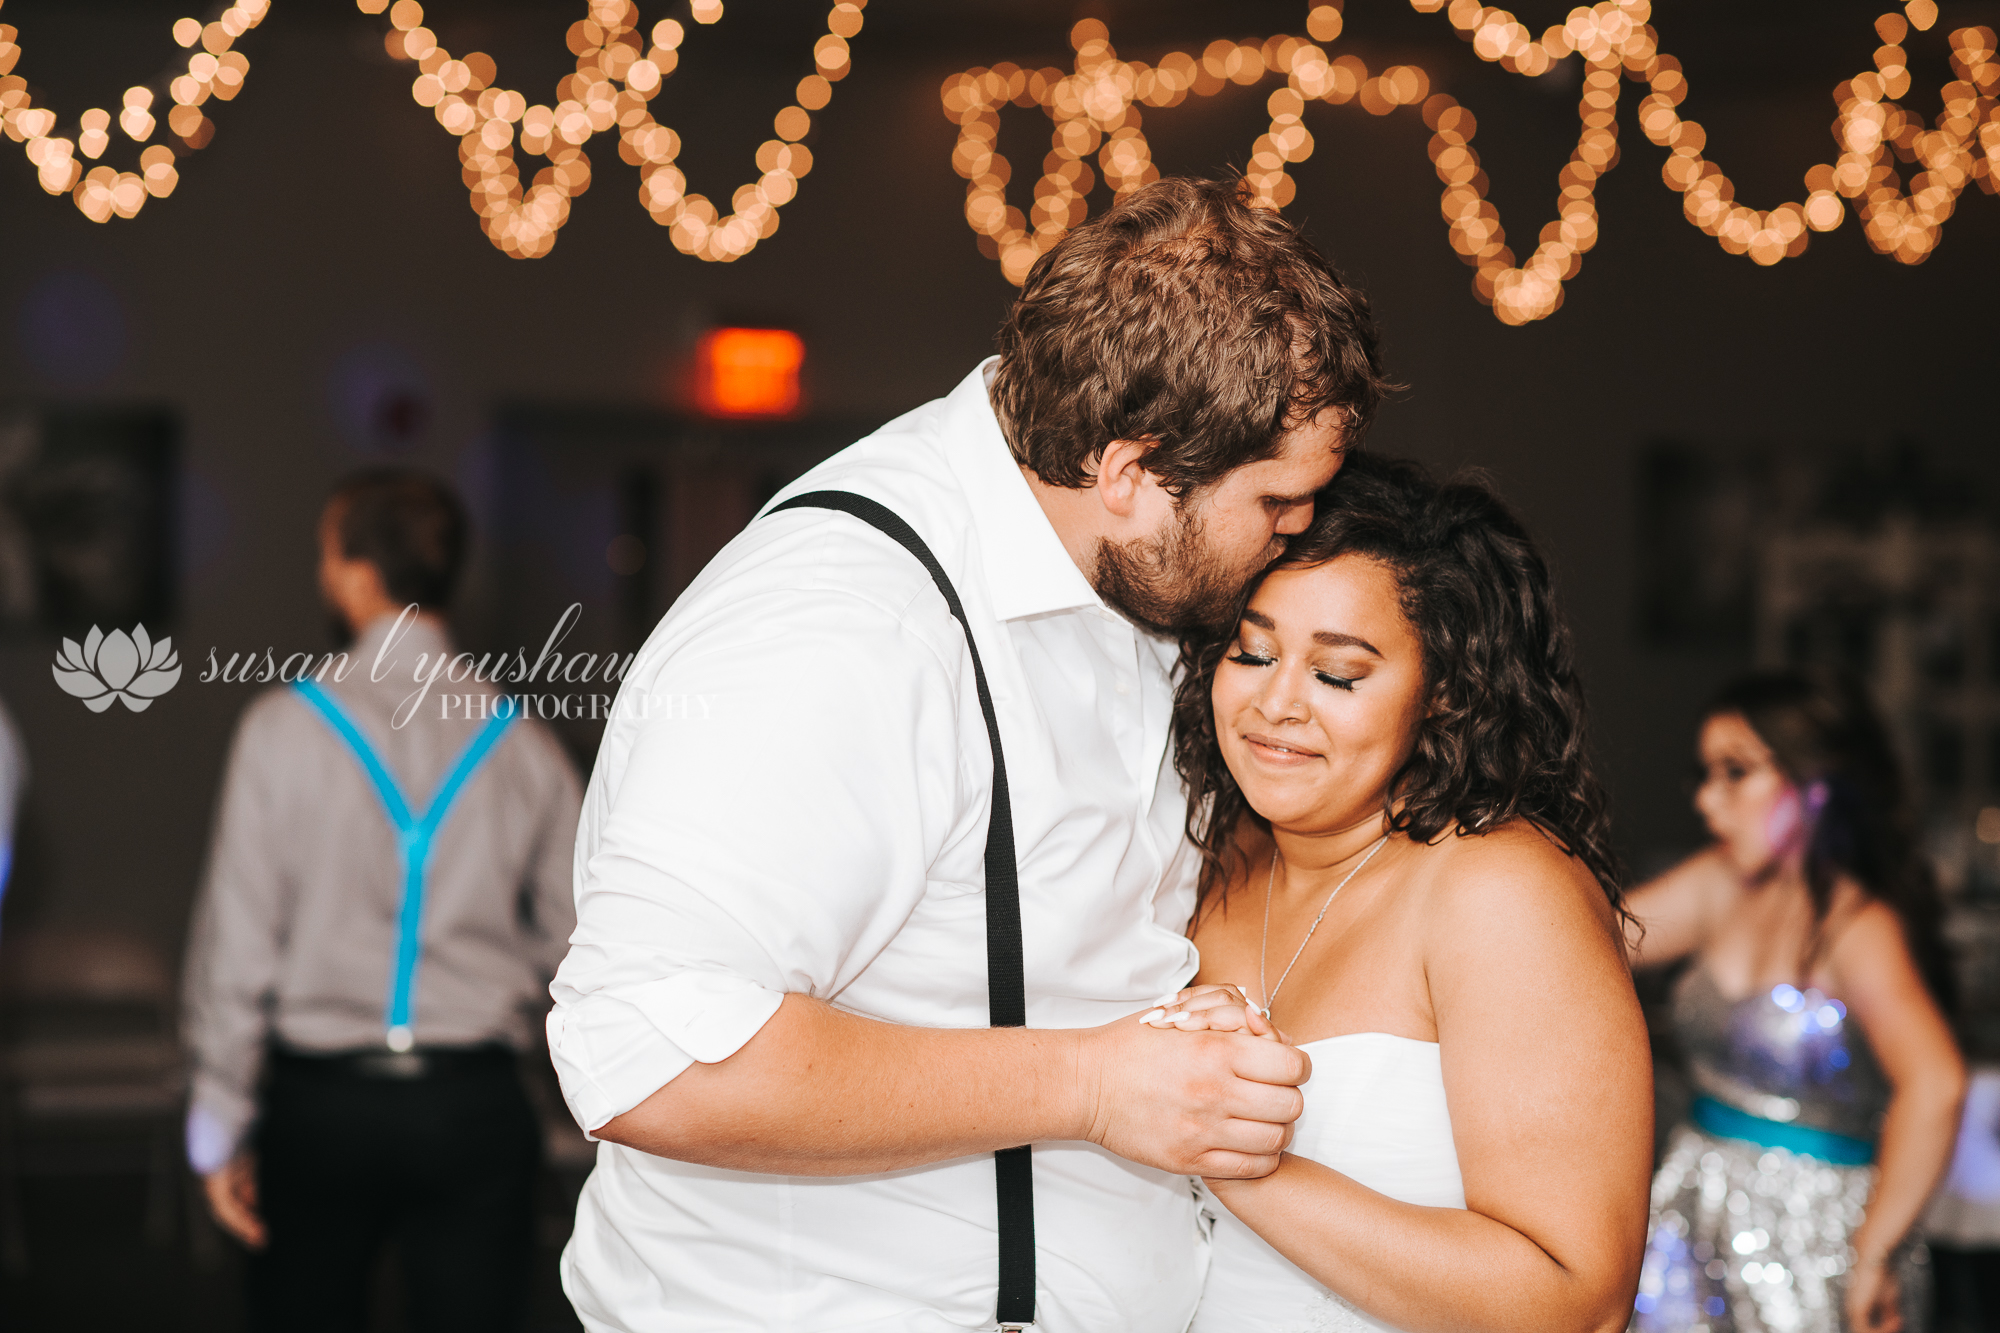 Katelyn and Wes Wedding Photos 07-13-2019 SLY Photography-130.jpg